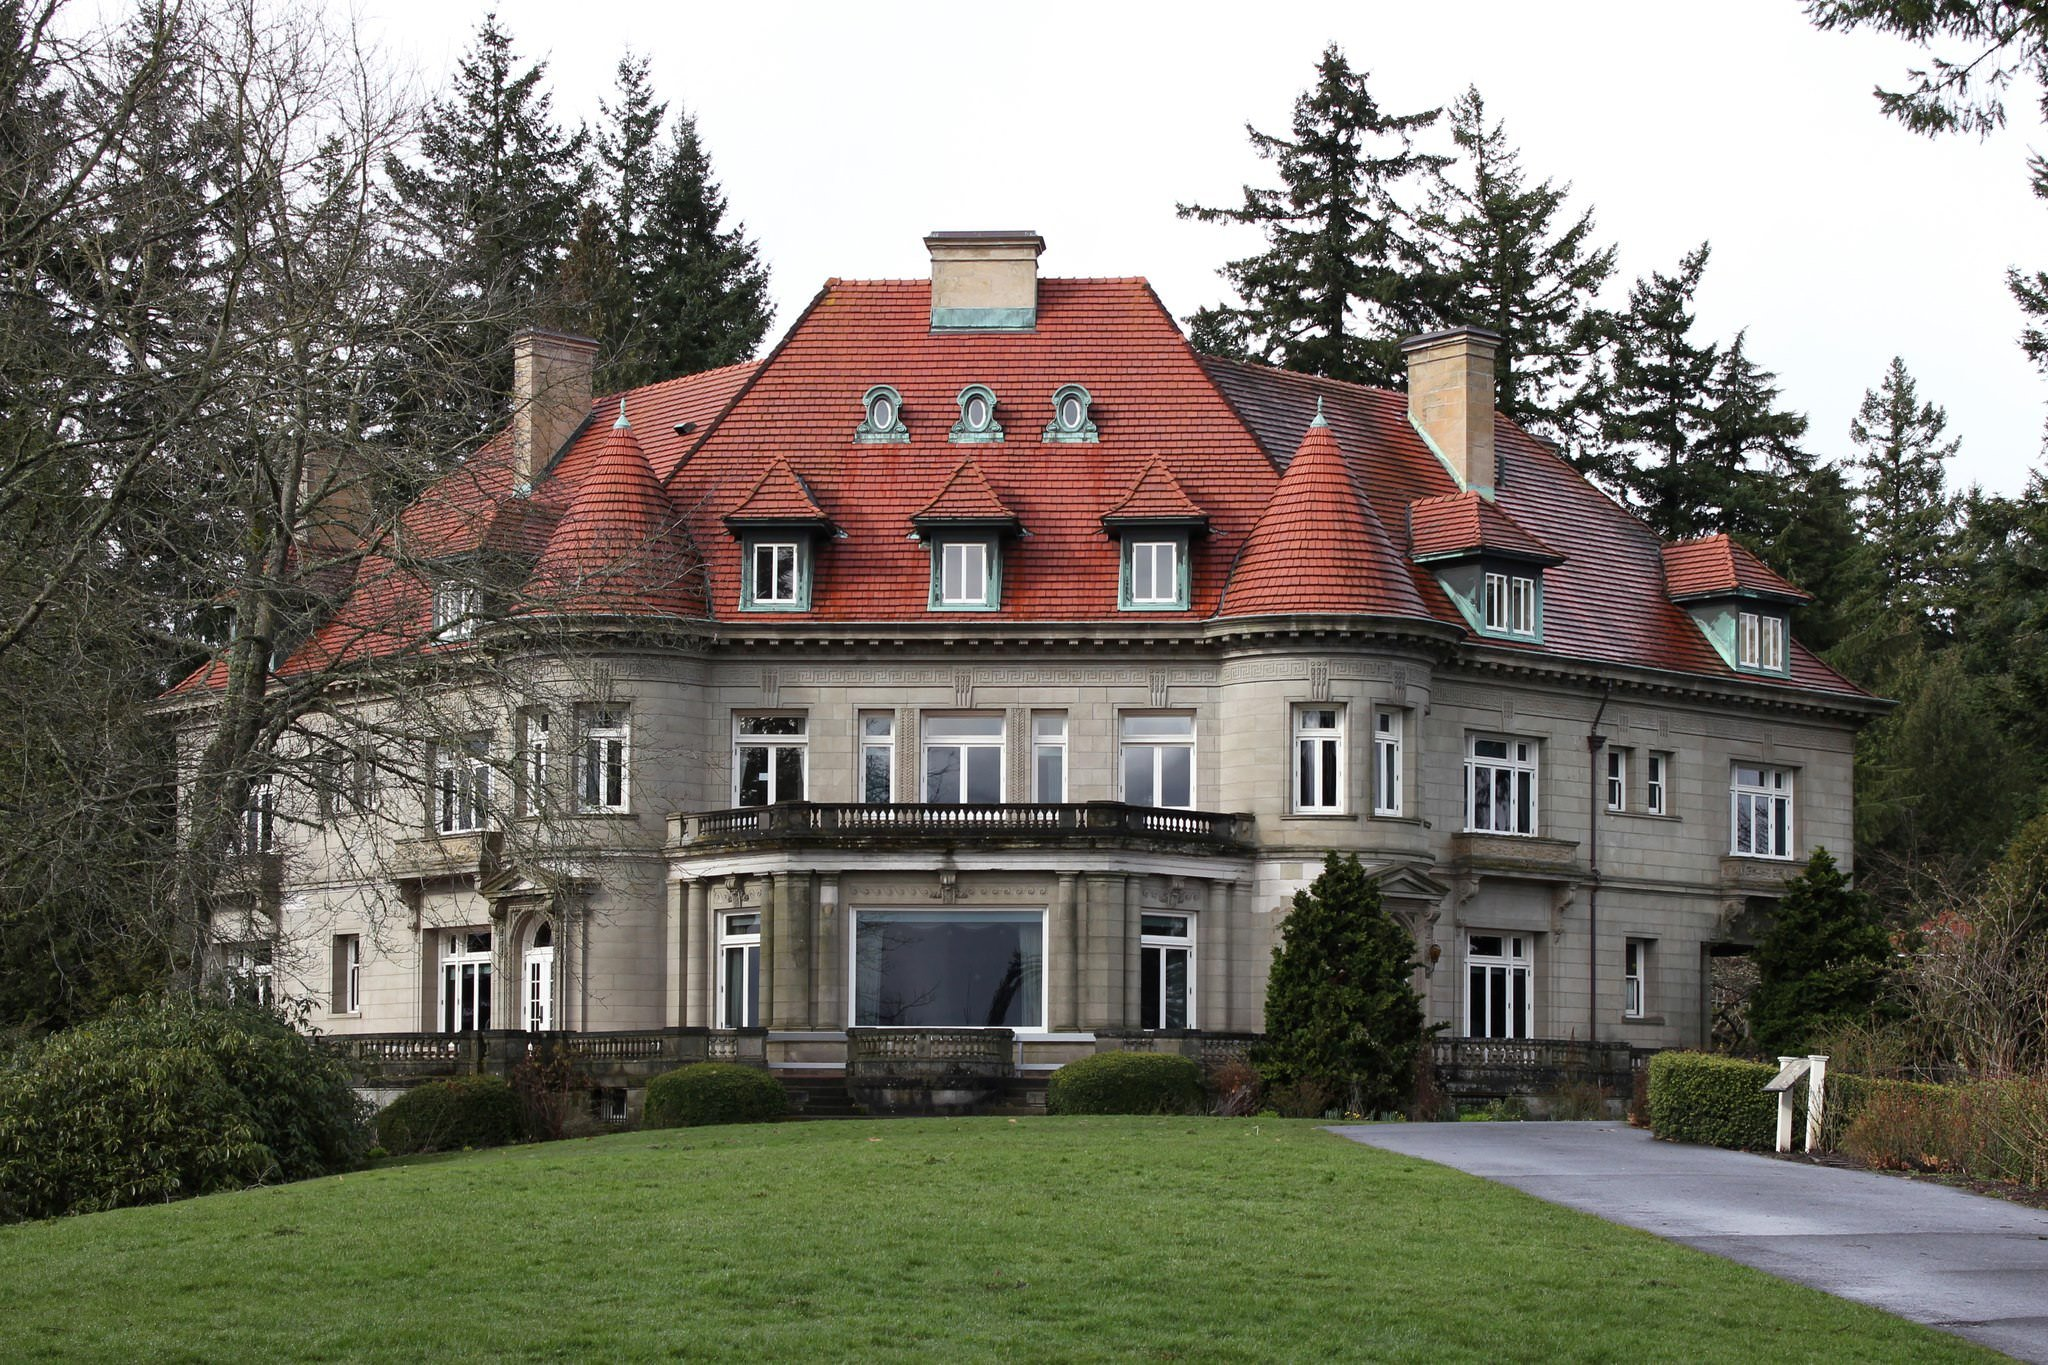 Portland S Historic Landmark Pittock Mansion Celebrates